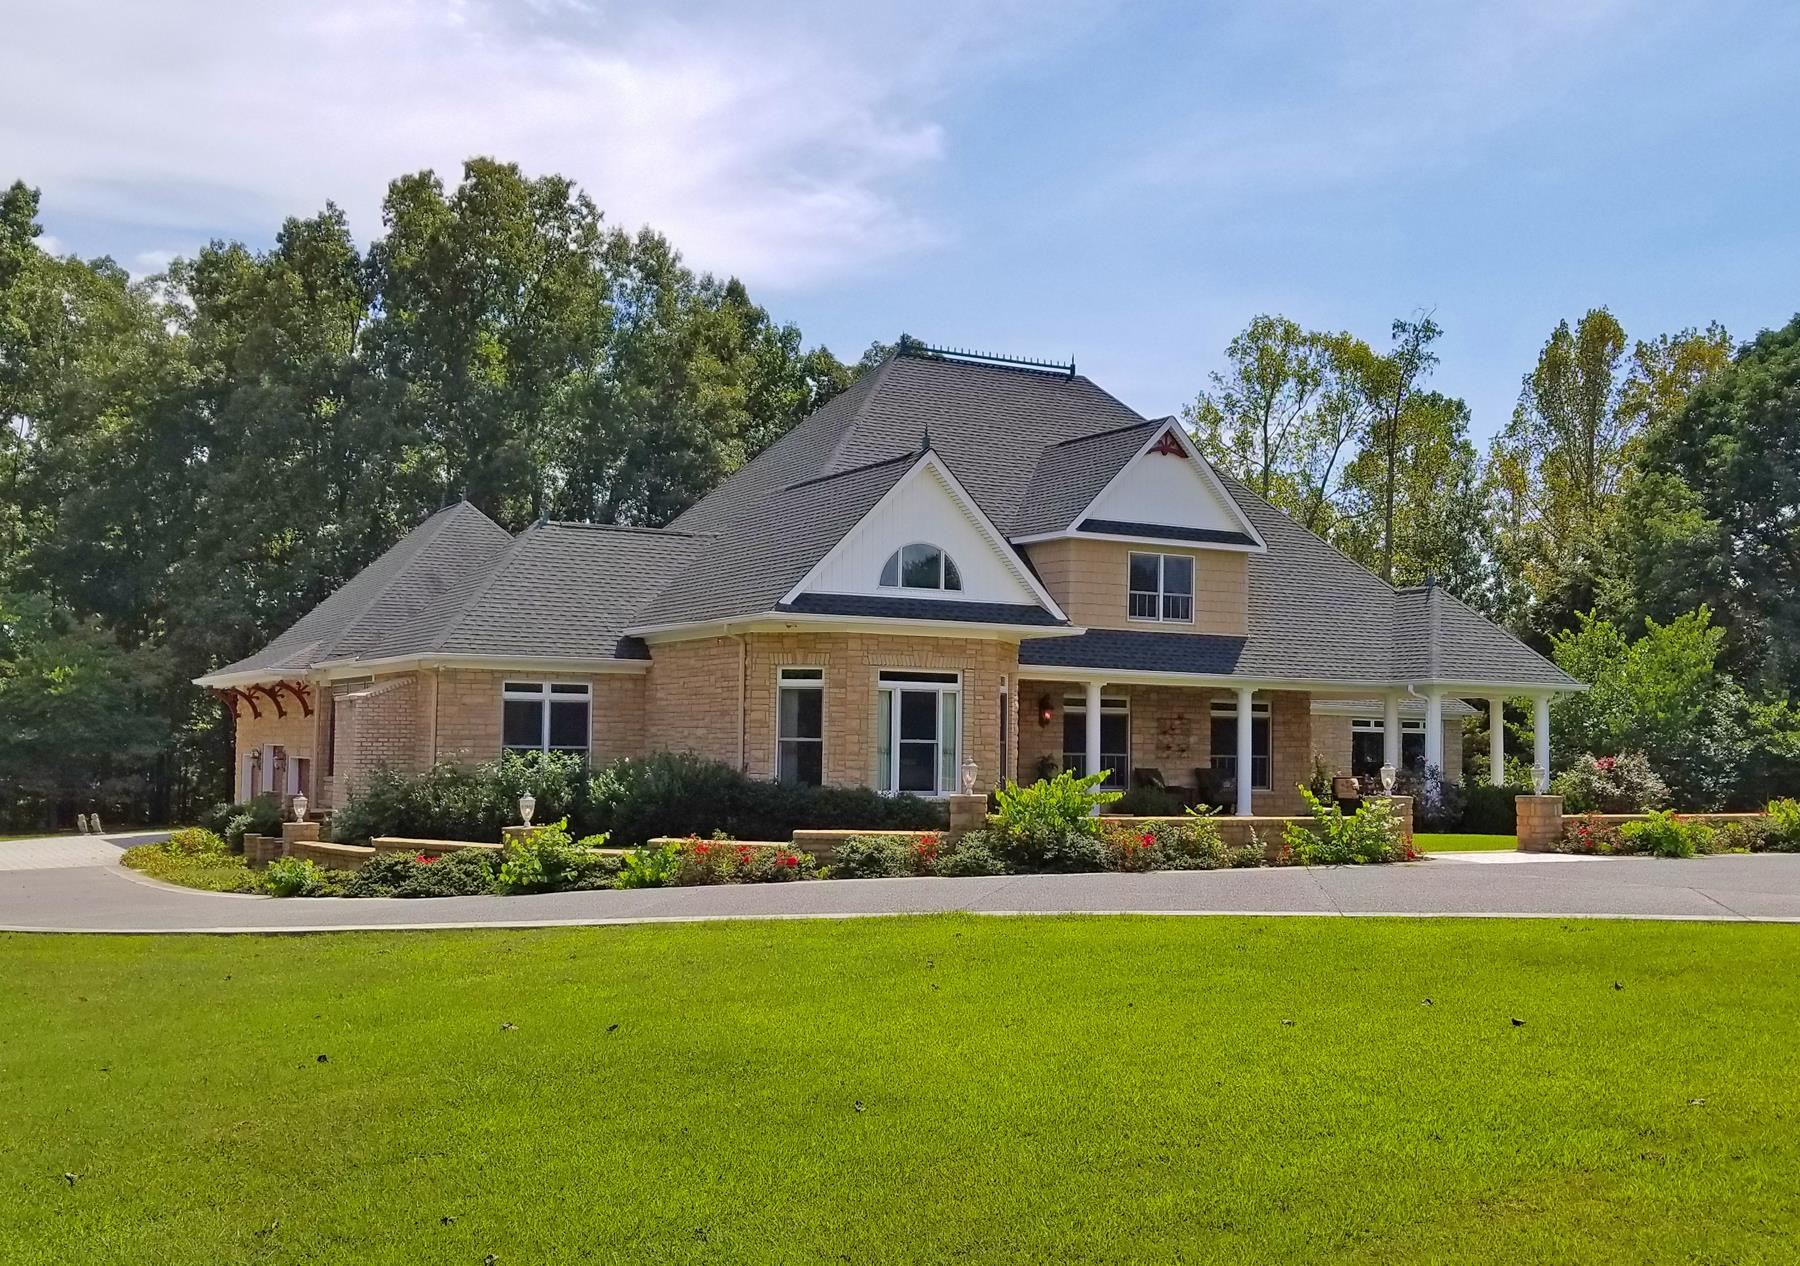 207 Thoma Ln, Manchester, TN 37355 - Manchester, TN real estate listing